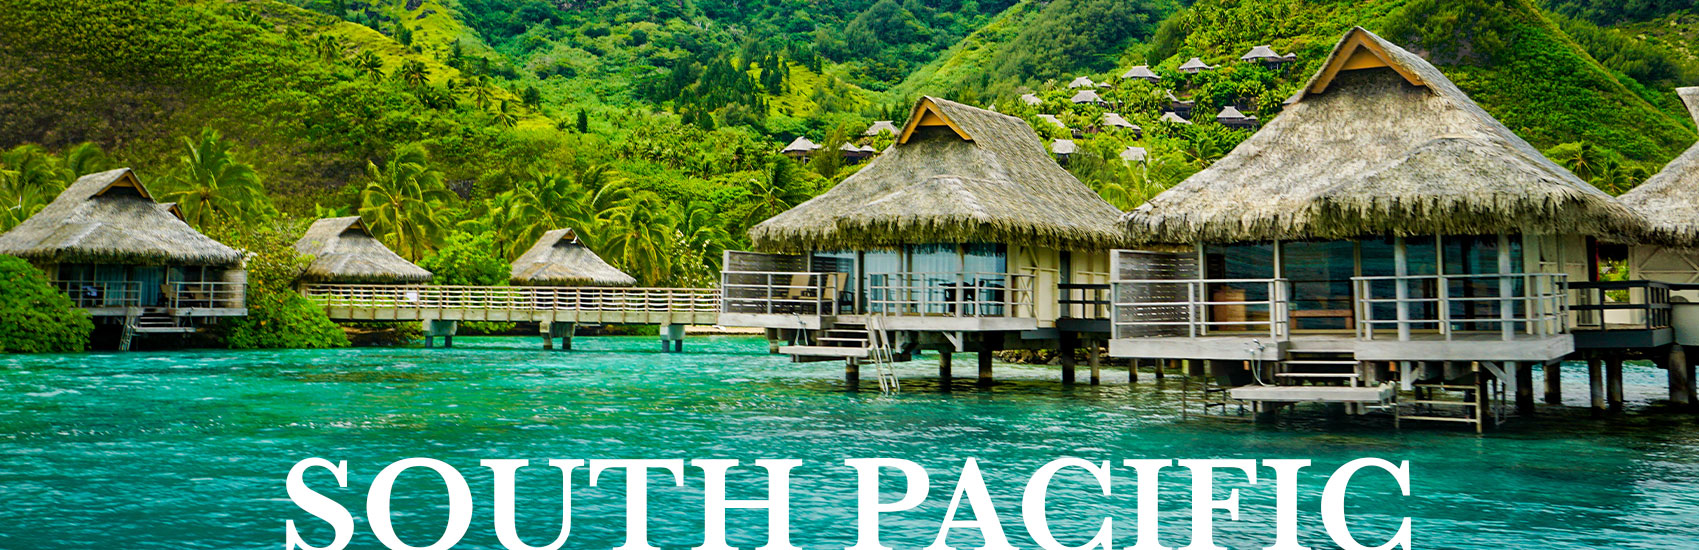 Cruise to the South Pacific 0